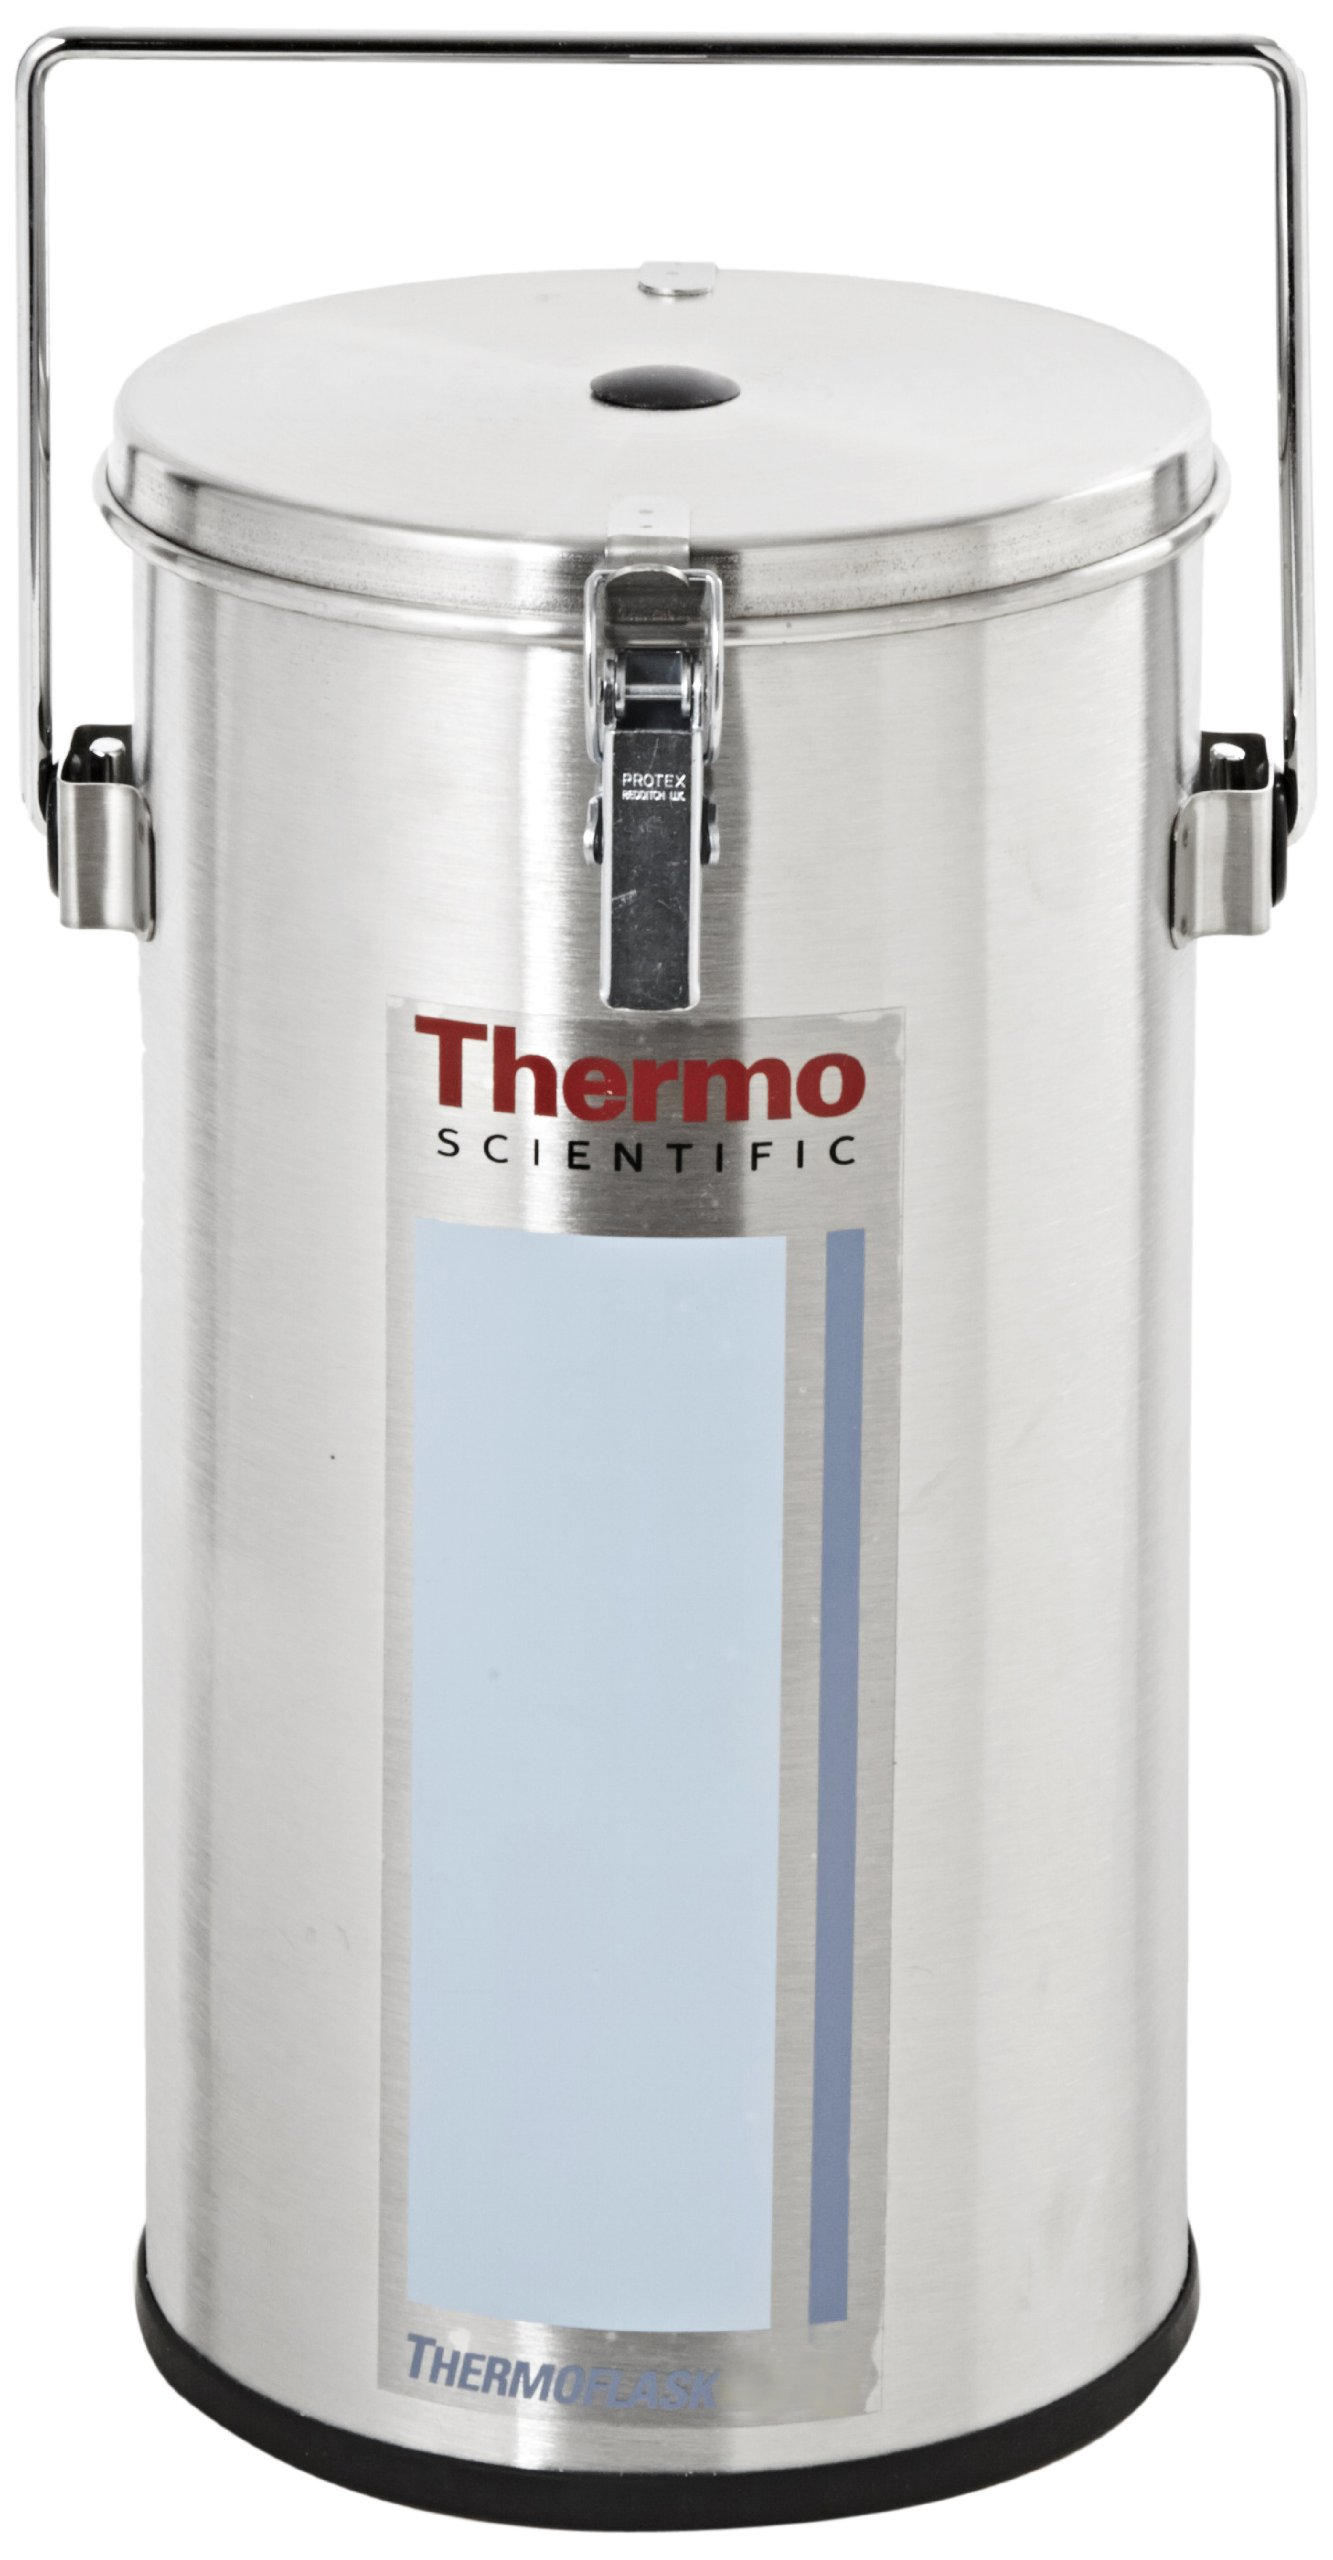 Thermo Scientific 2124 Stainless Steel 4.5L Wide Mouth Lab-Line Flask, with Lid and Handle